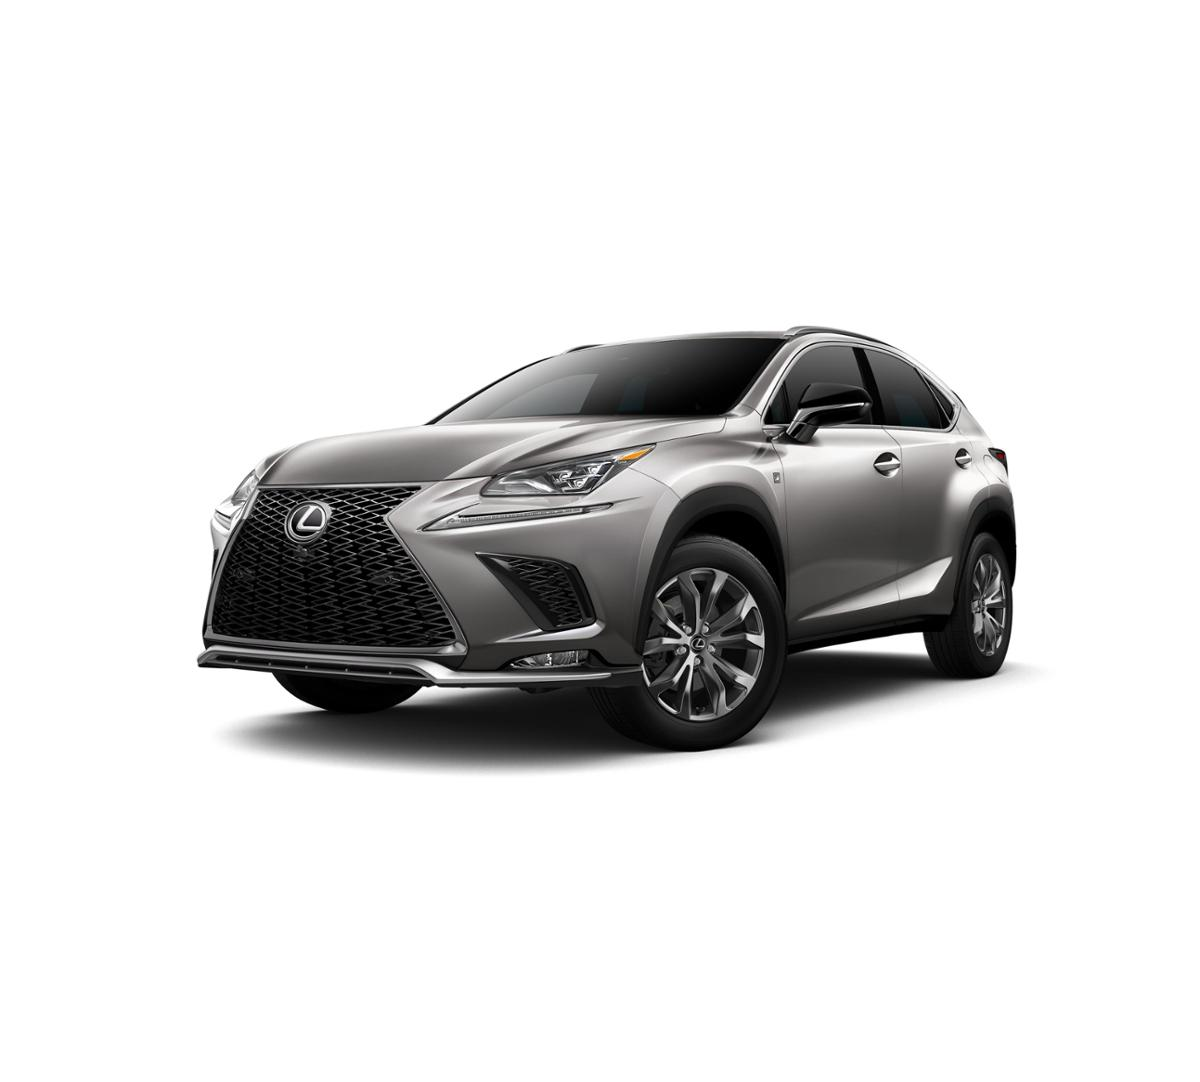 2018 Lexus NX 300 Vehicle Photo in Bedford, NH 03110